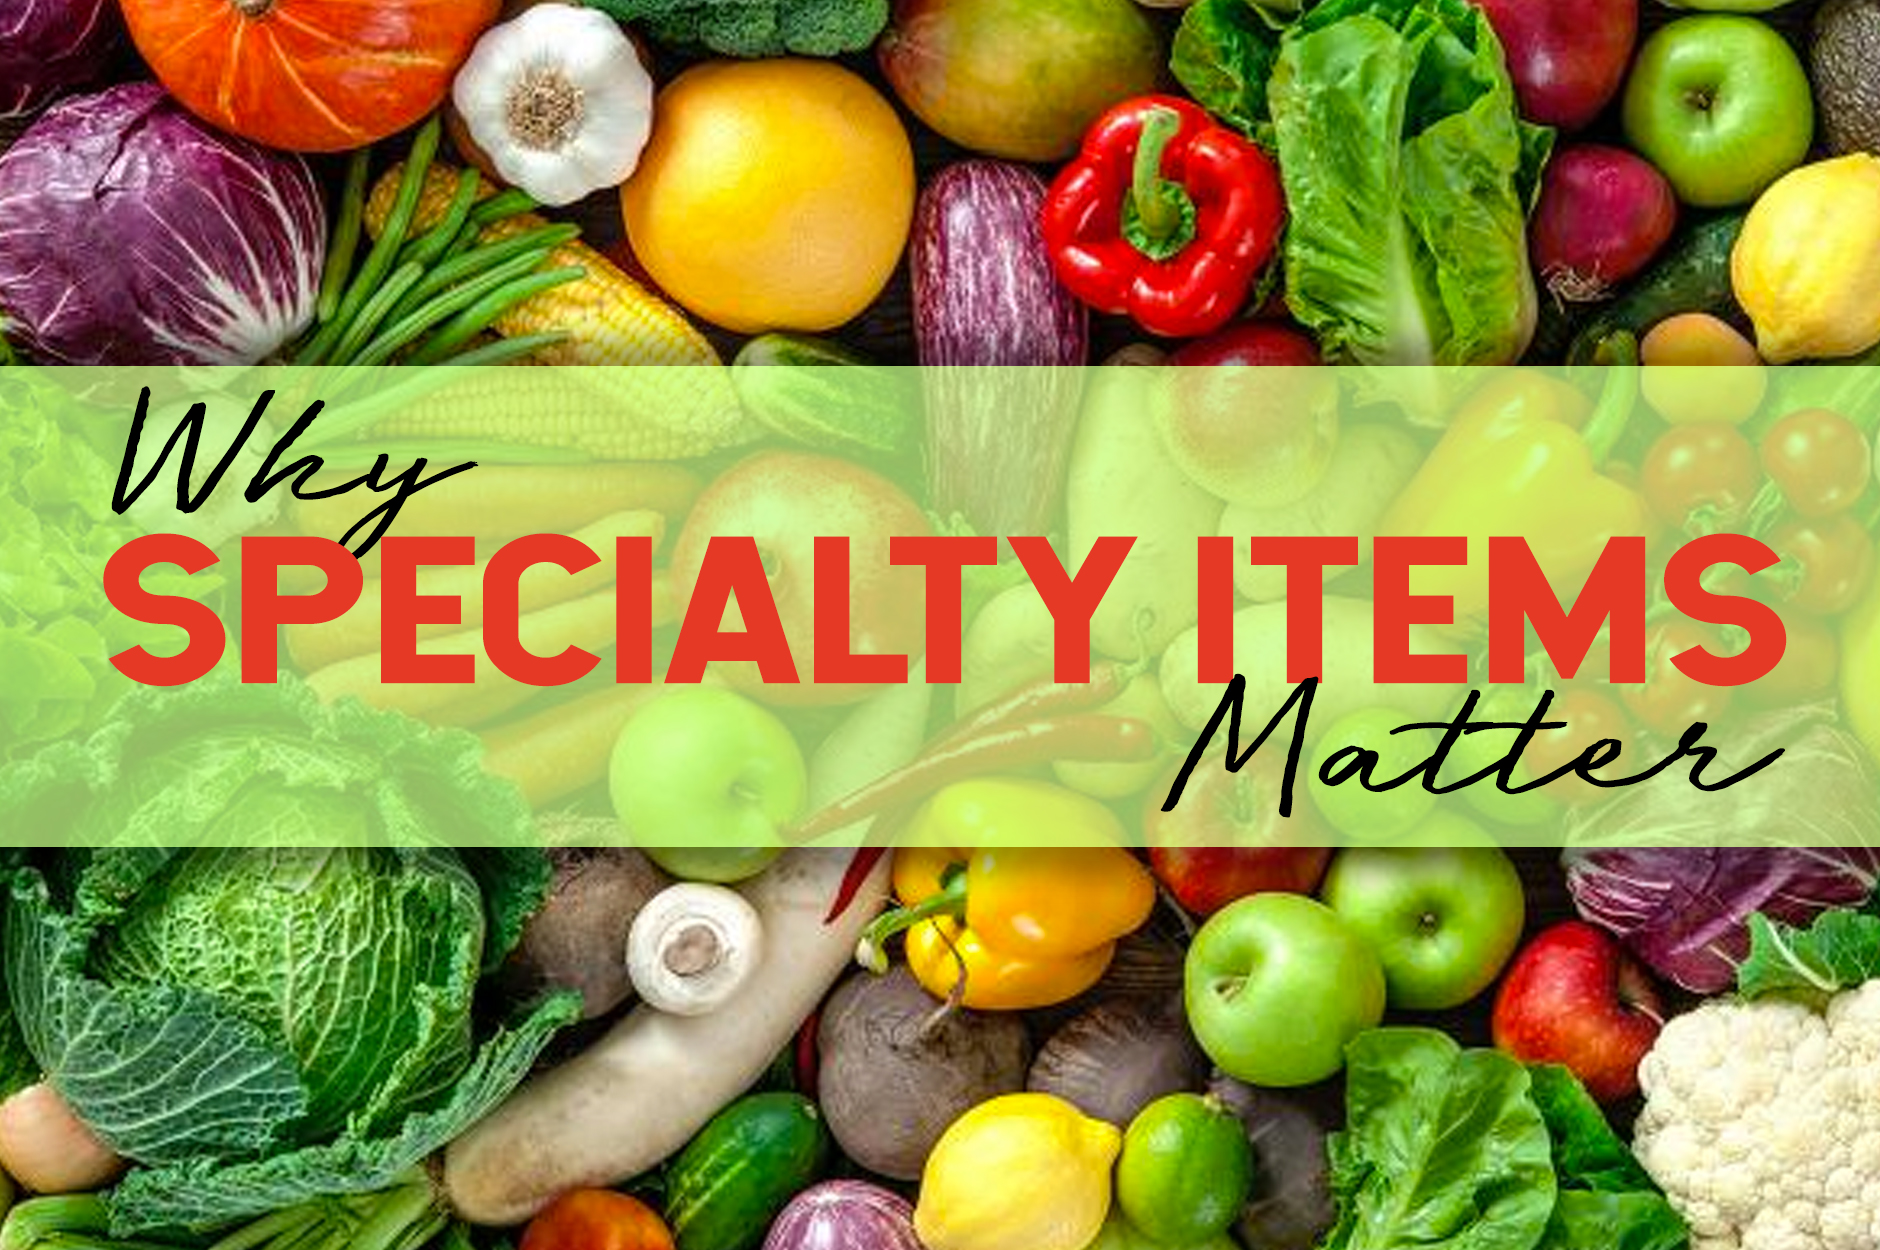 Why Specialty Items Matter